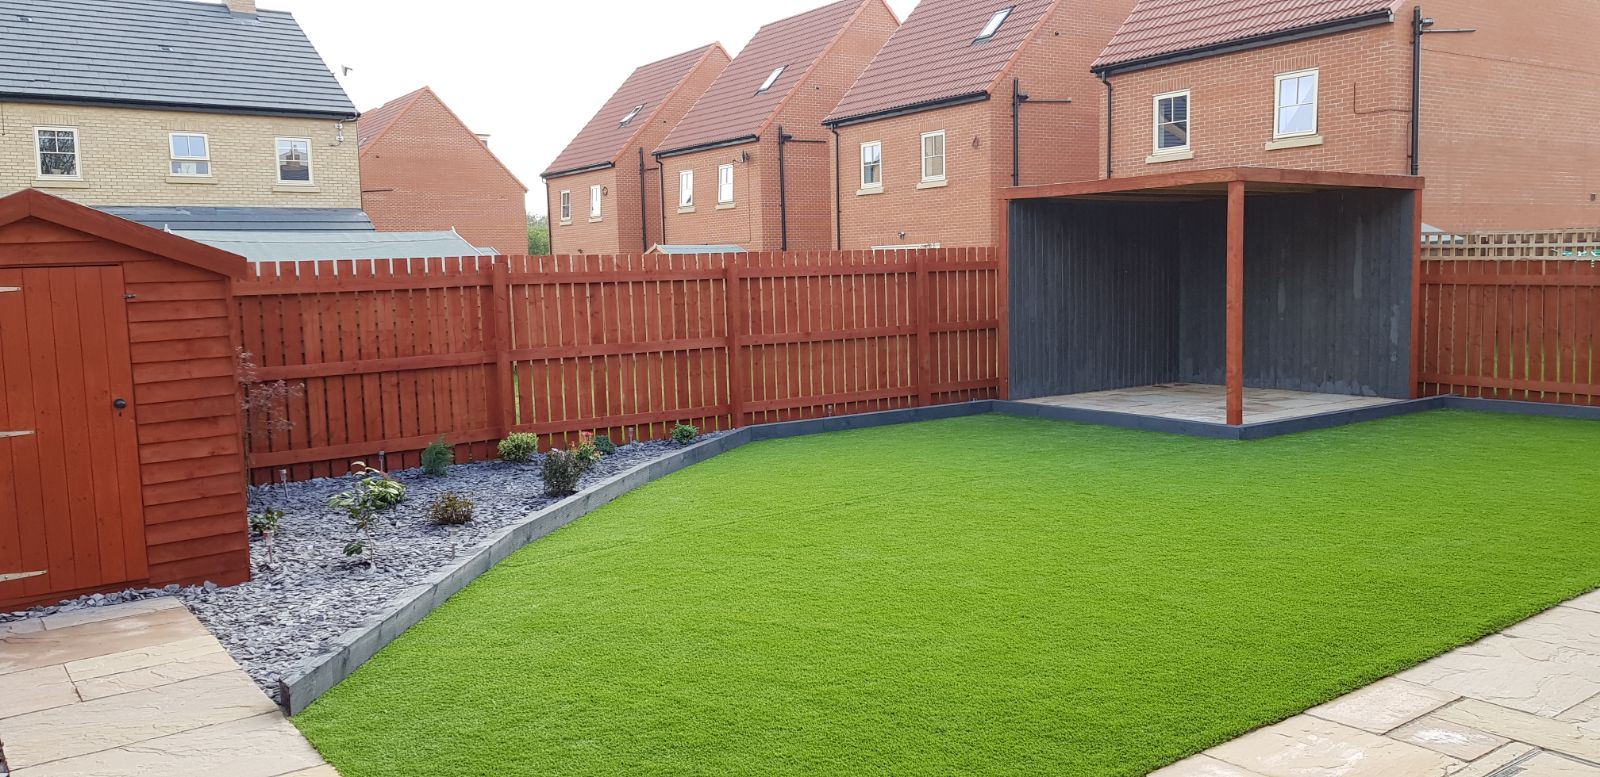 Artificial grass project complete